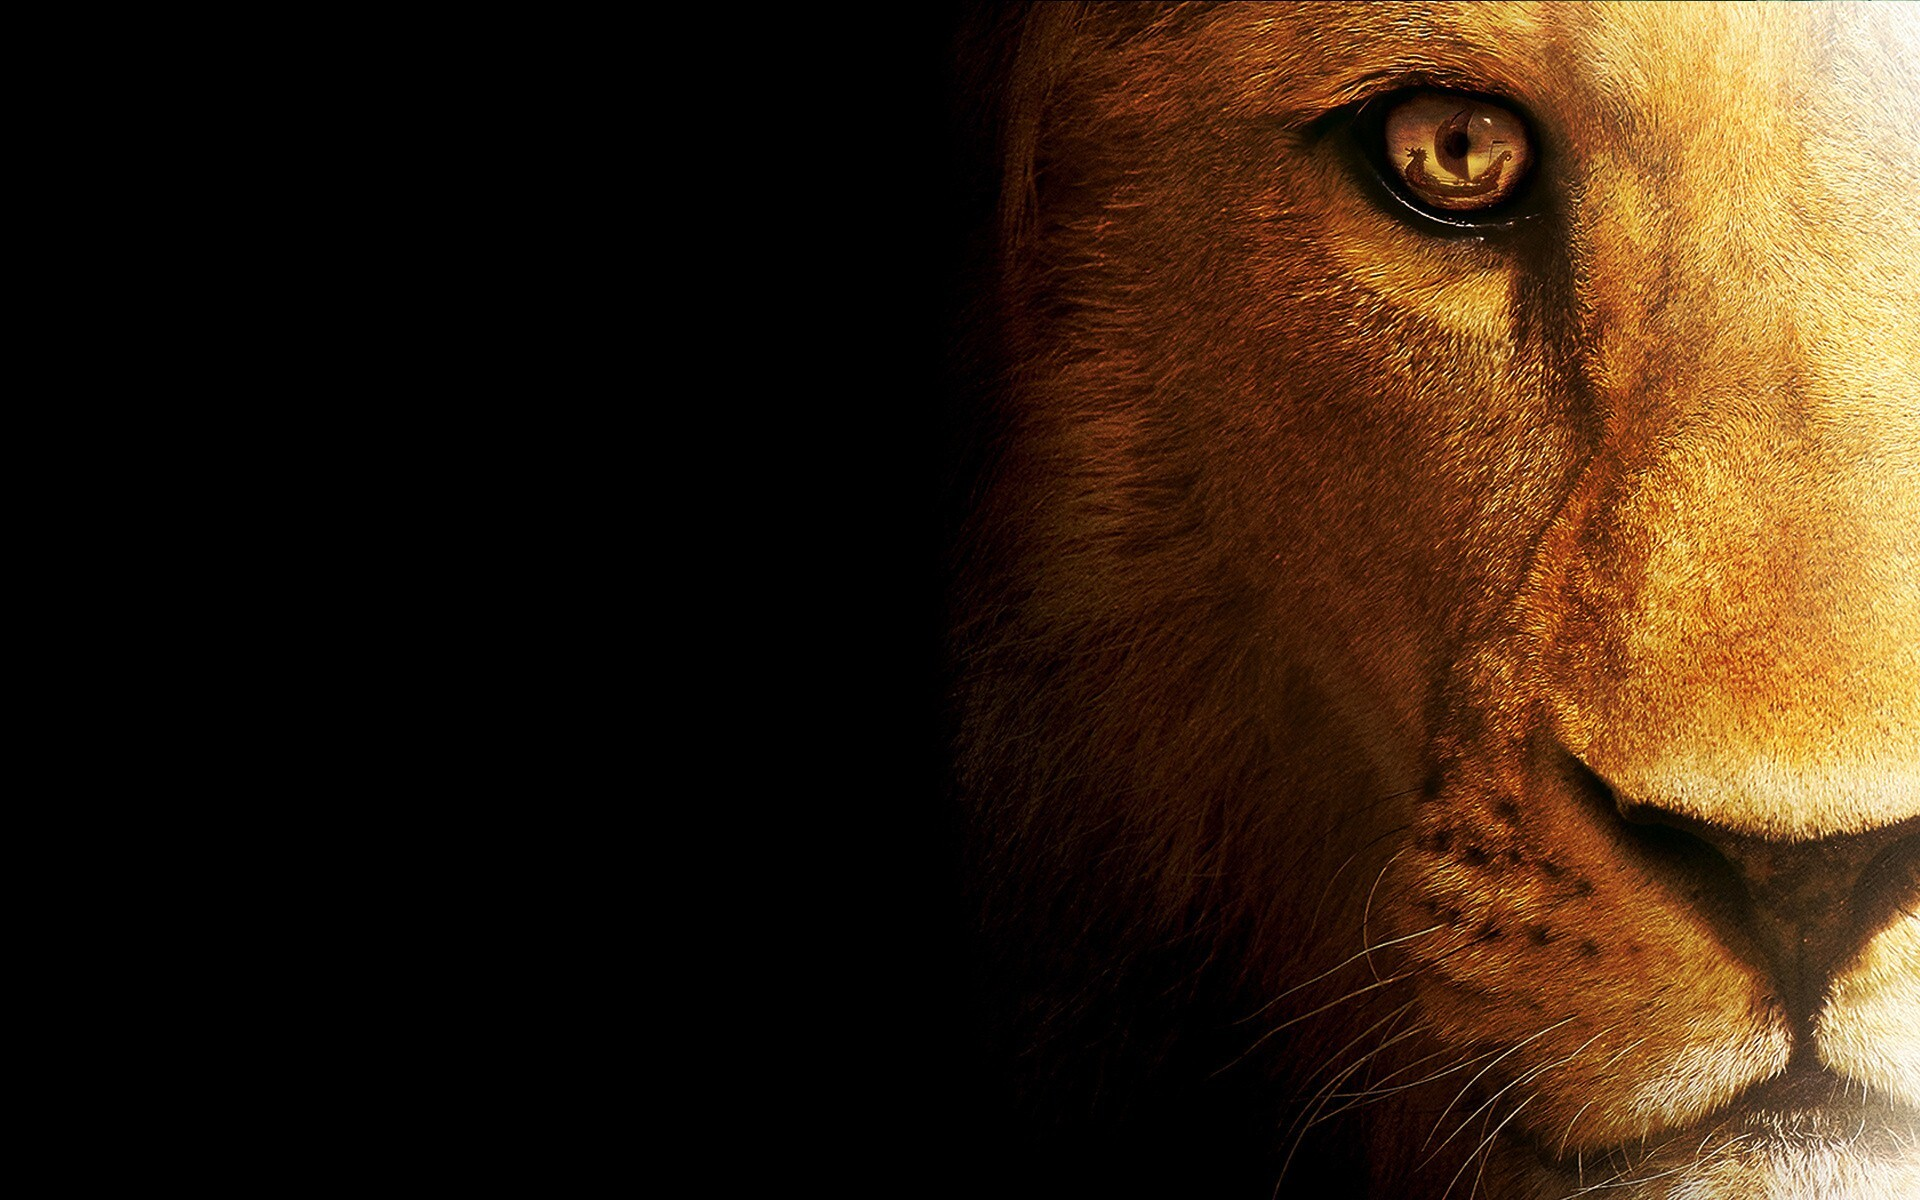 Amazing Wallpaper Logo Lion - Amazing_HD_Desktop_Background_Wallpaper_of_Lion_Wild_Animal  Collection_784129.jpg